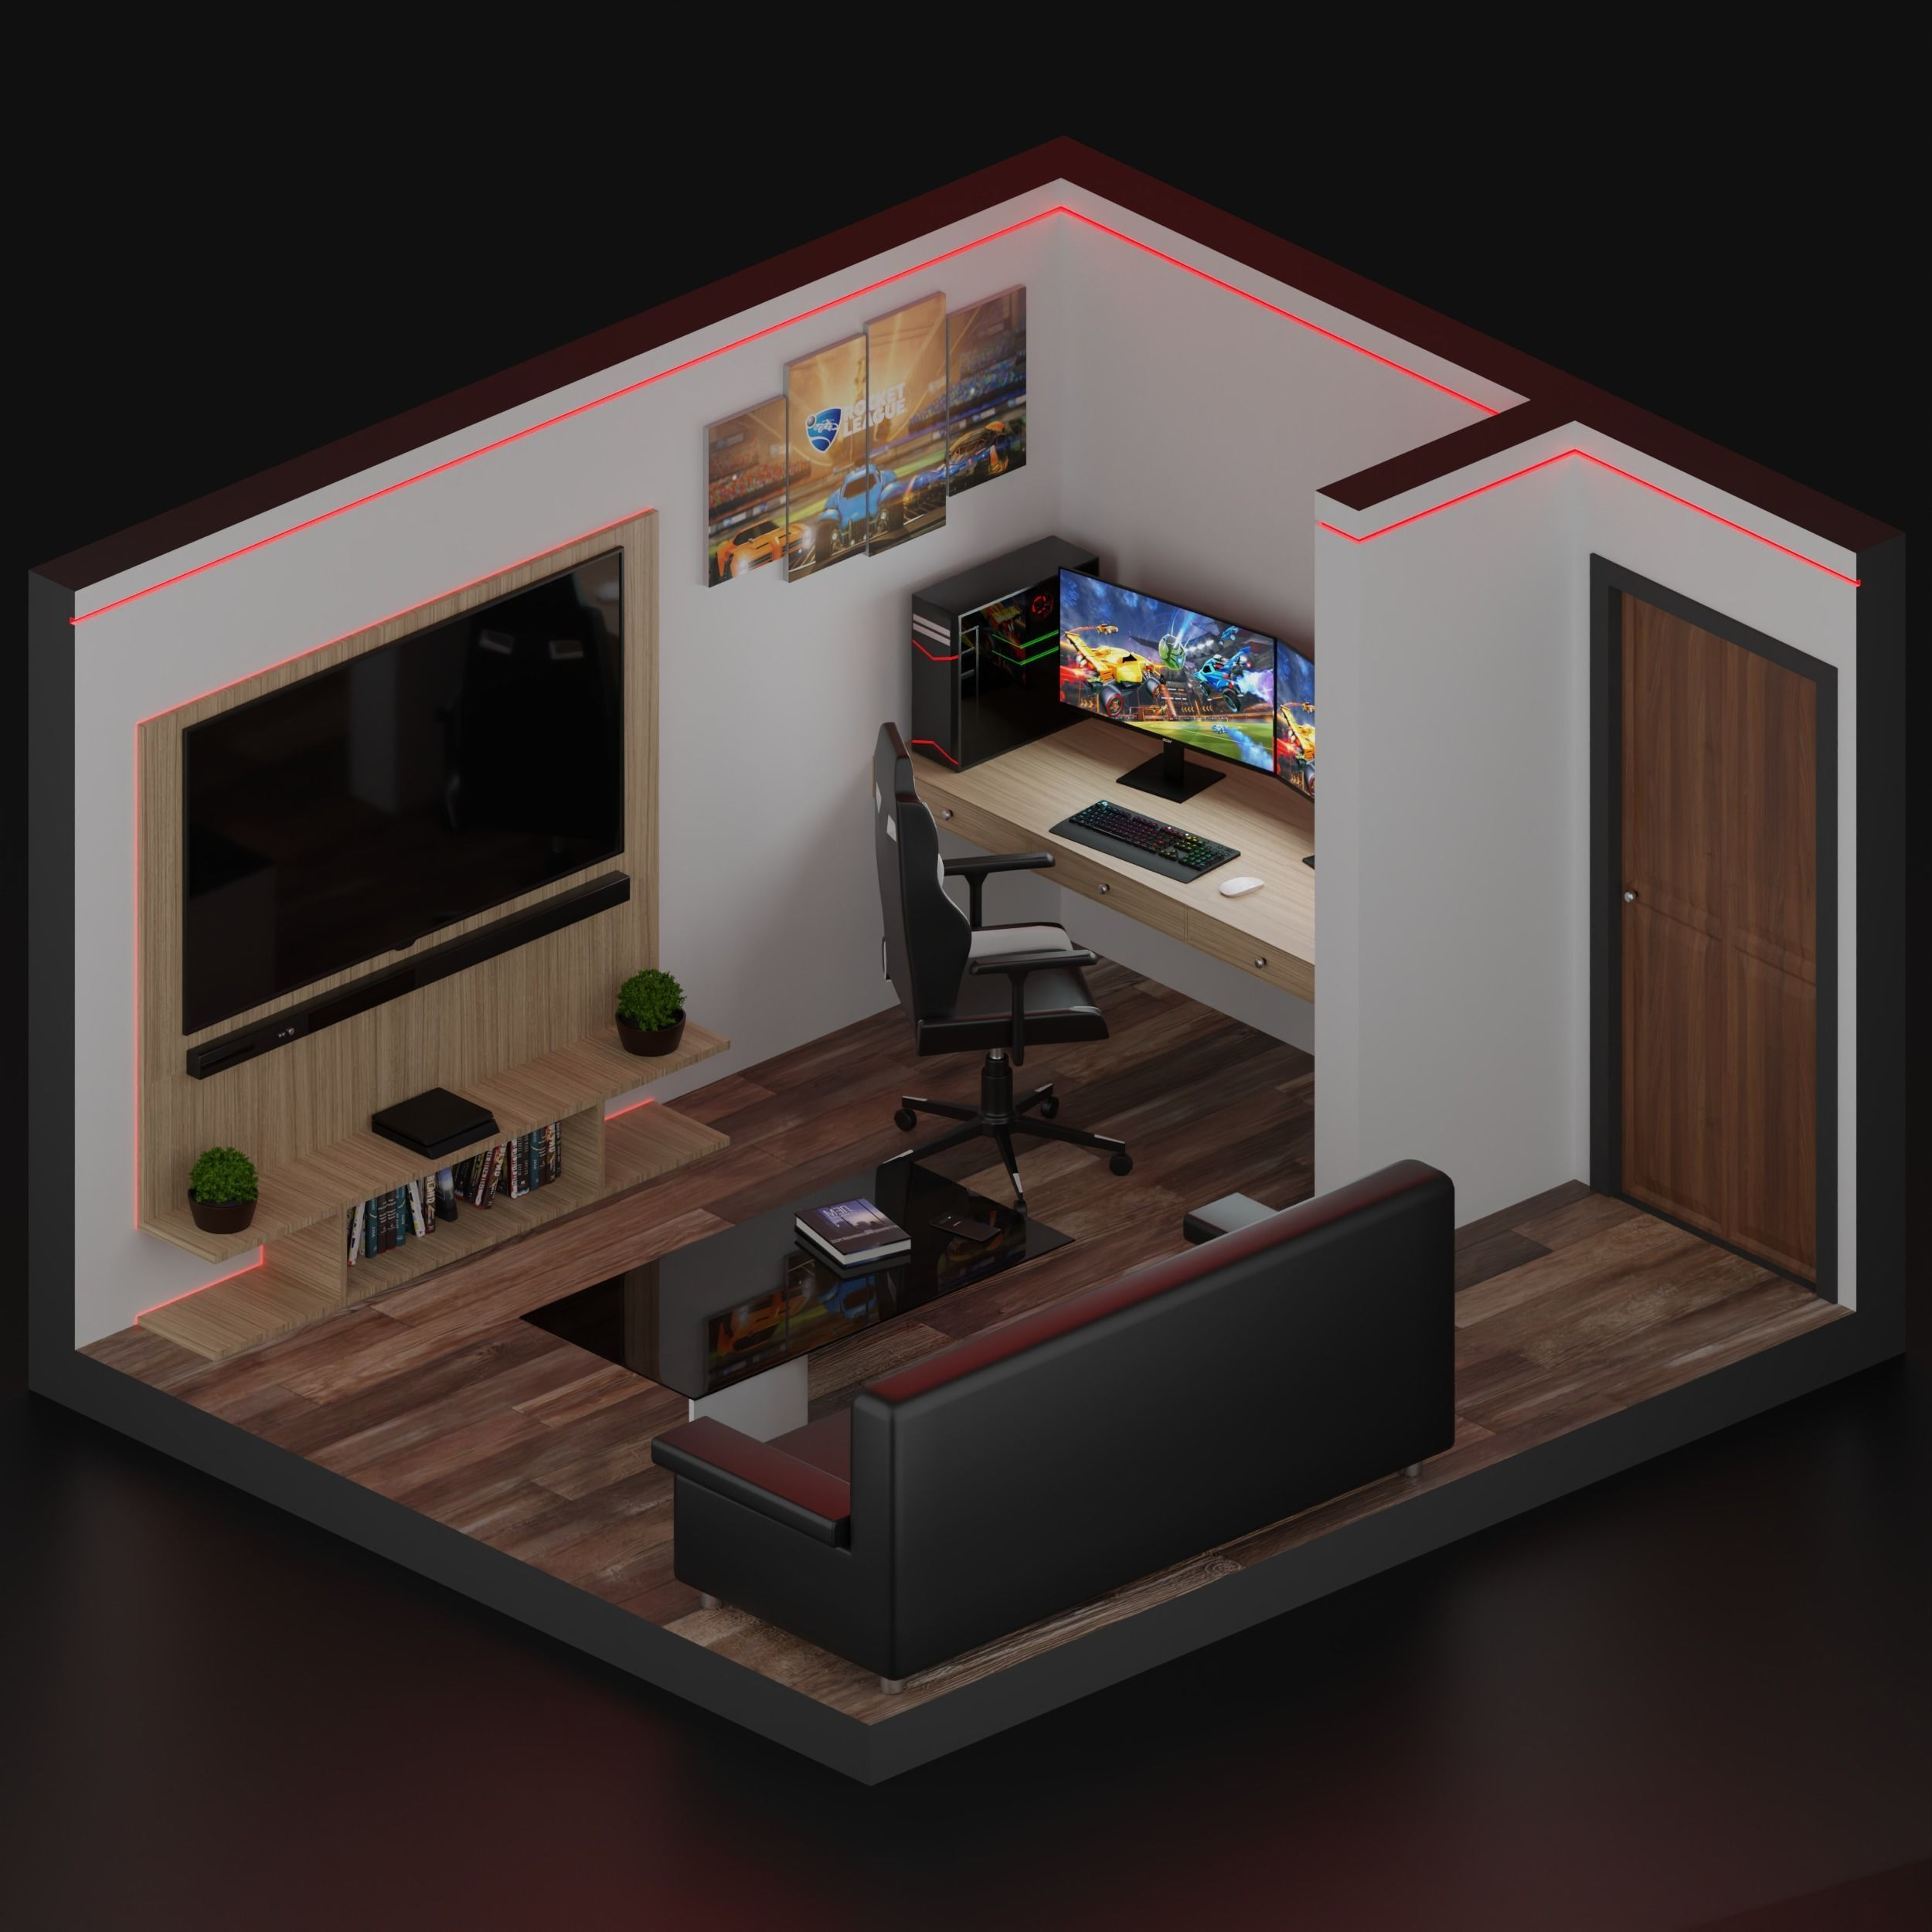 3d Asset Realistic Low Poly Gaming Room Cgtrader With 1:1 furniture from real brands. realistic low poly gaming room 3d model